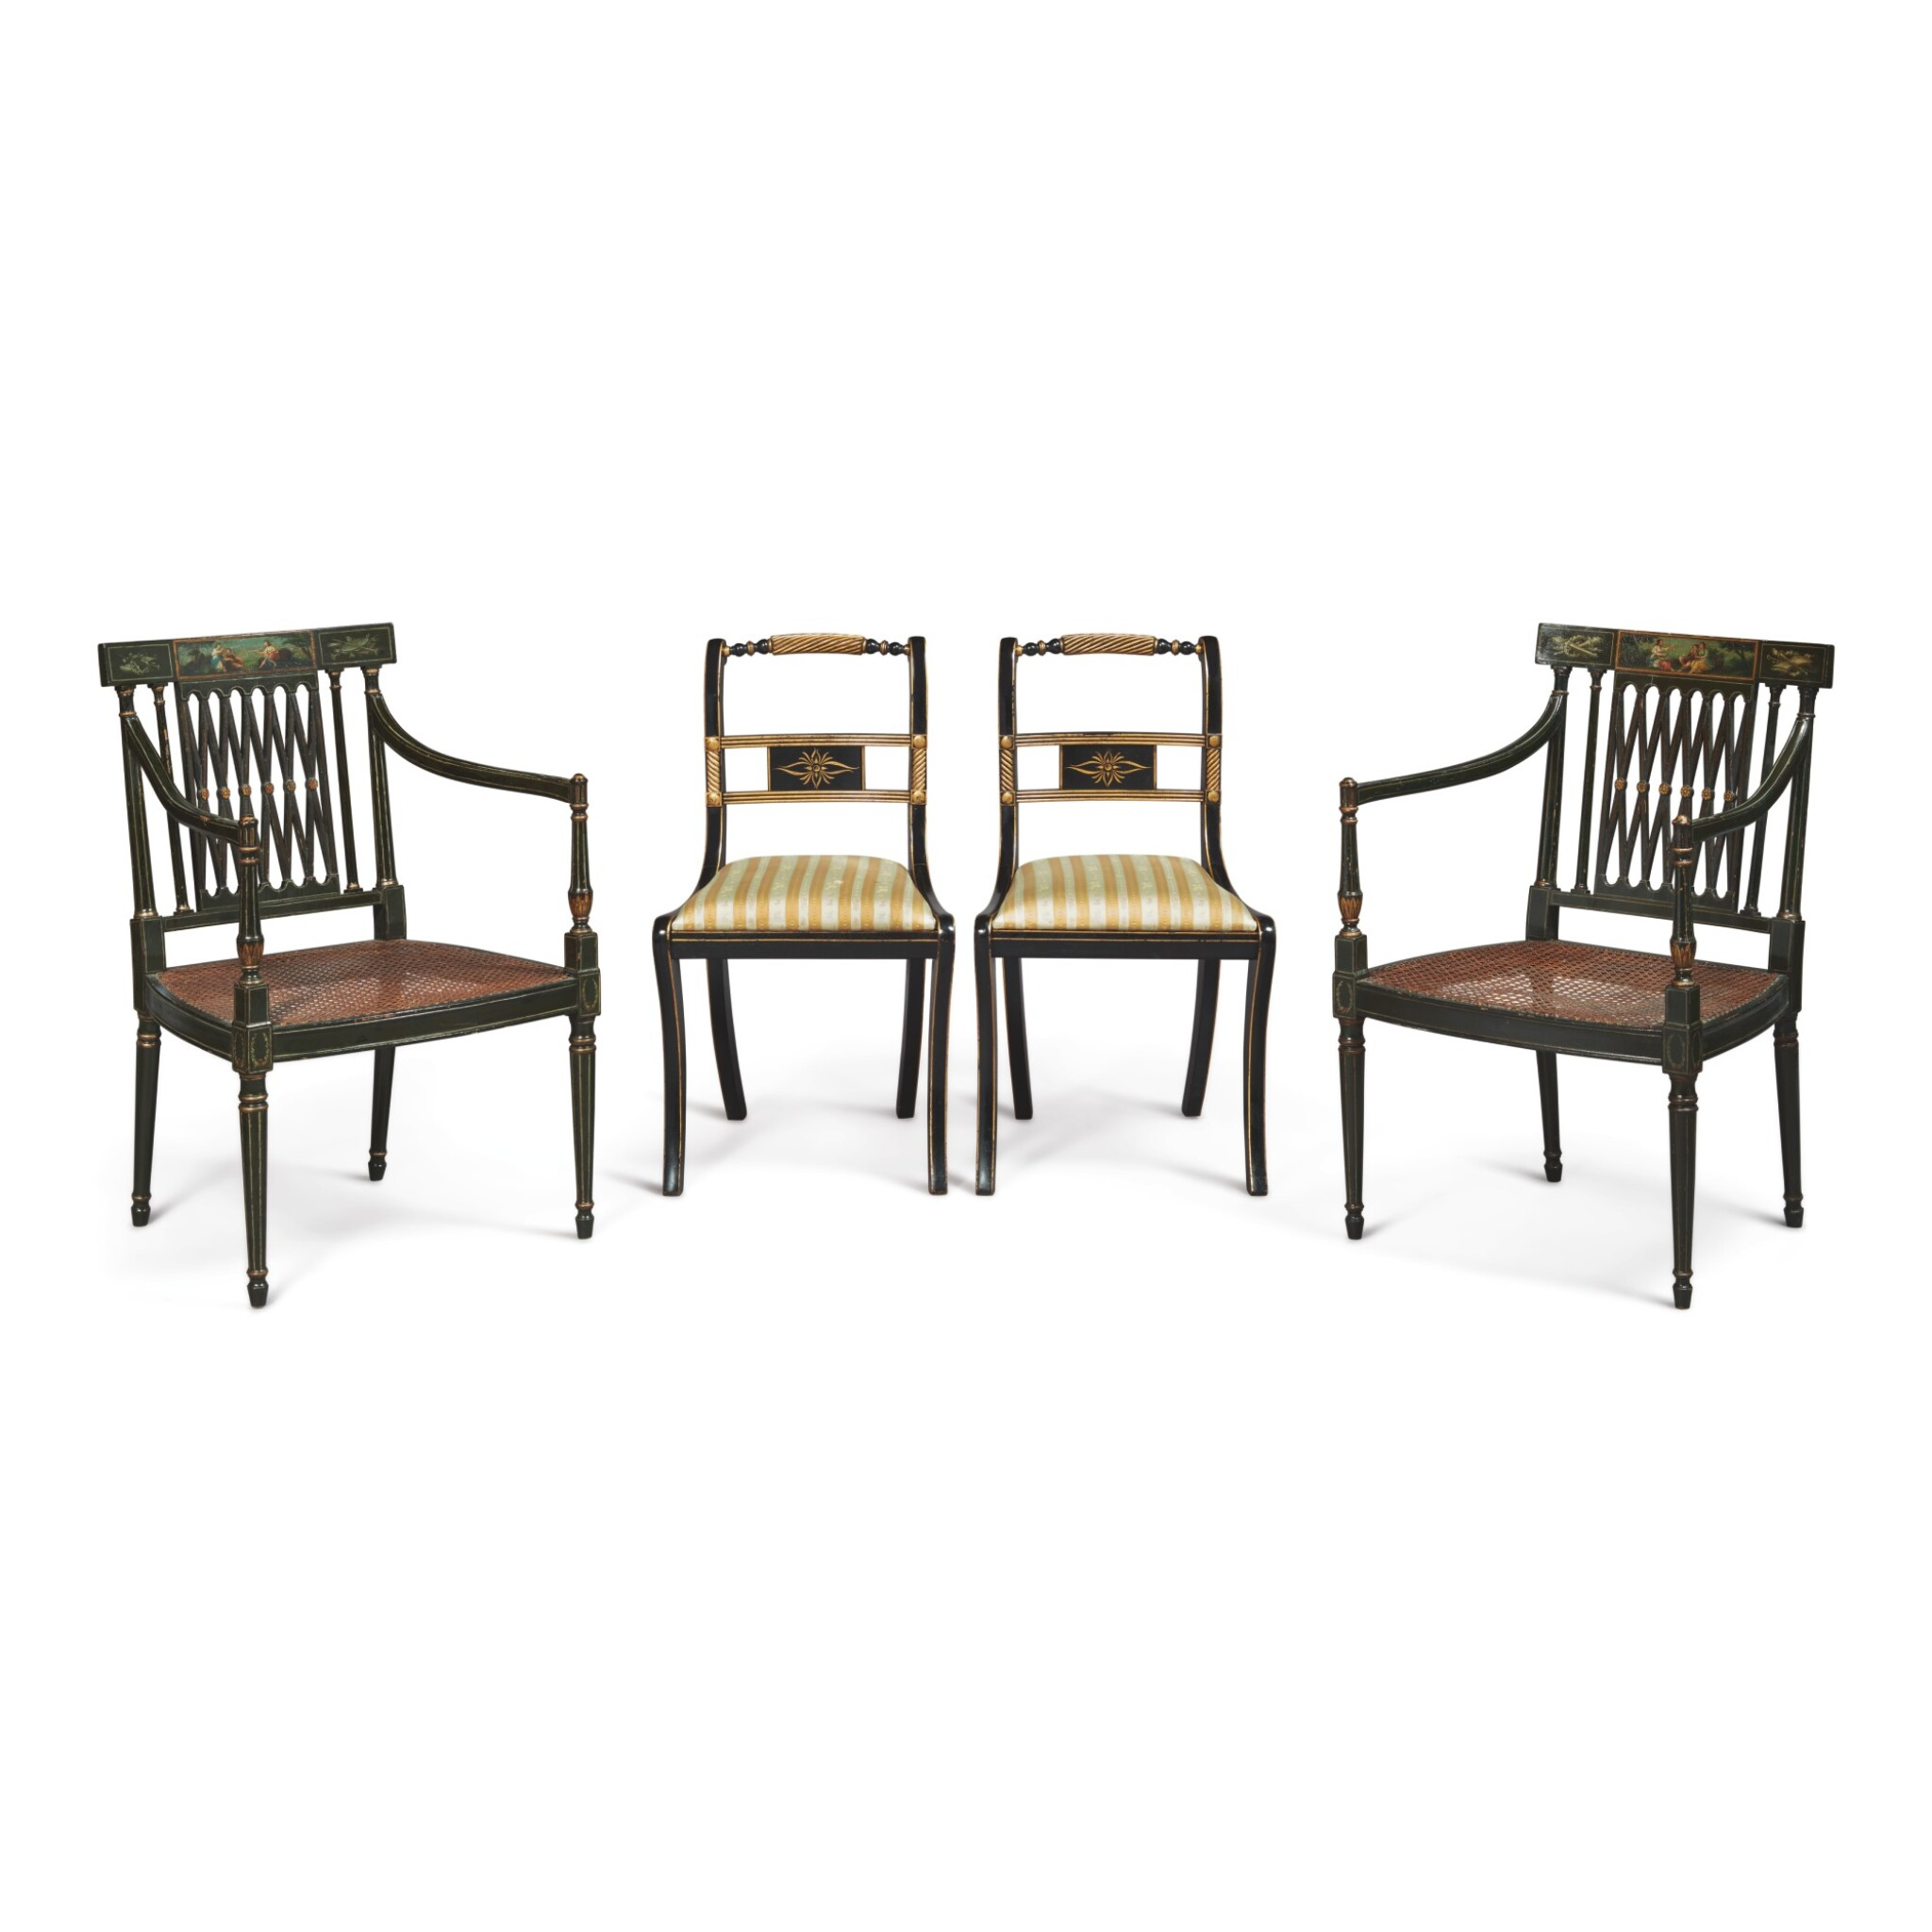 View full screen - View 1 of Lot 18. A PAIR OF REGENCY STYLE BLACK AND POLYCHROME PAINTED OPEN ARMCHAIRS AND A PAIR OF REGENCY STYLE EBONISED AND PARCEL-GILT SIDE CHAIRS.